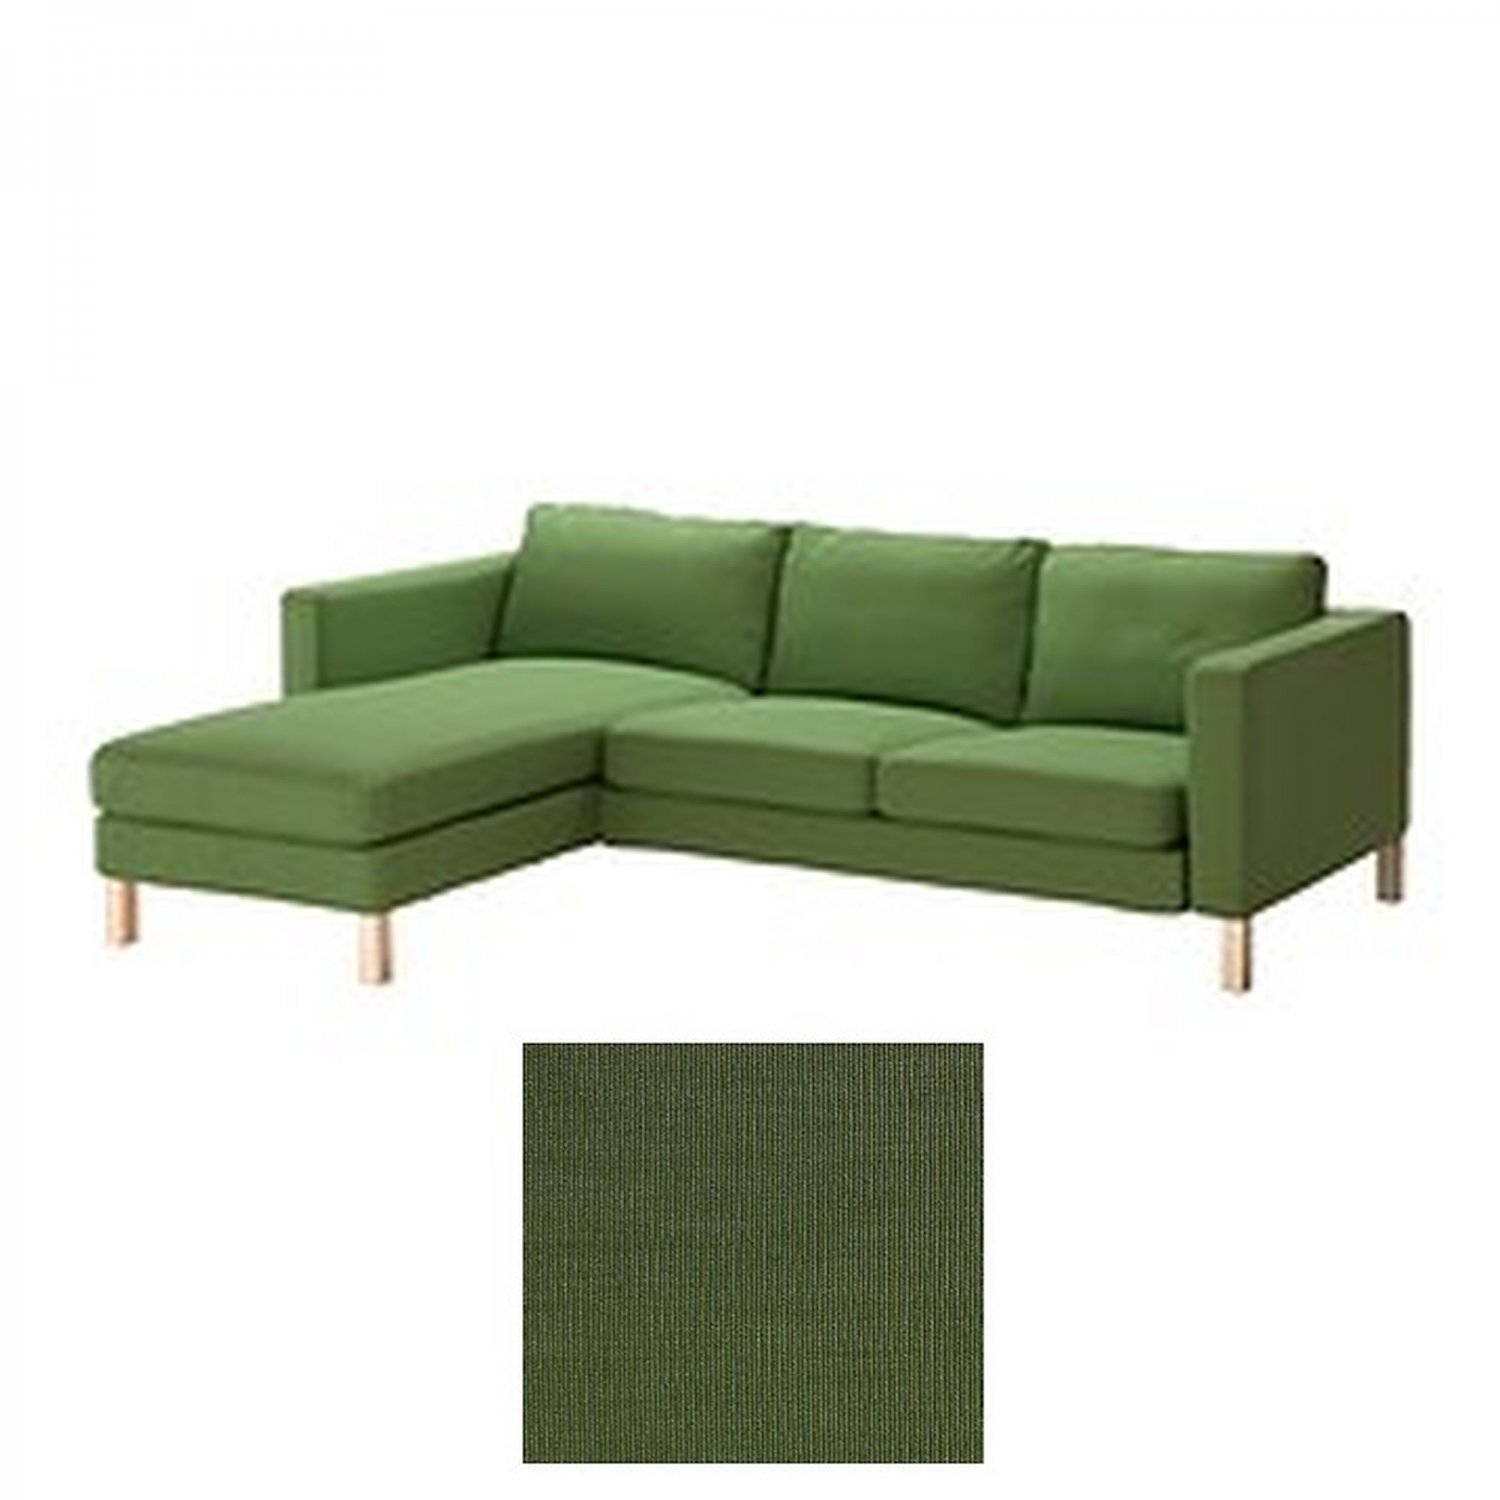 Ikea Karlstad 2 Seat Loveseat Sofa And Chaise Slipcover Cover Sivik Green Add On Last One